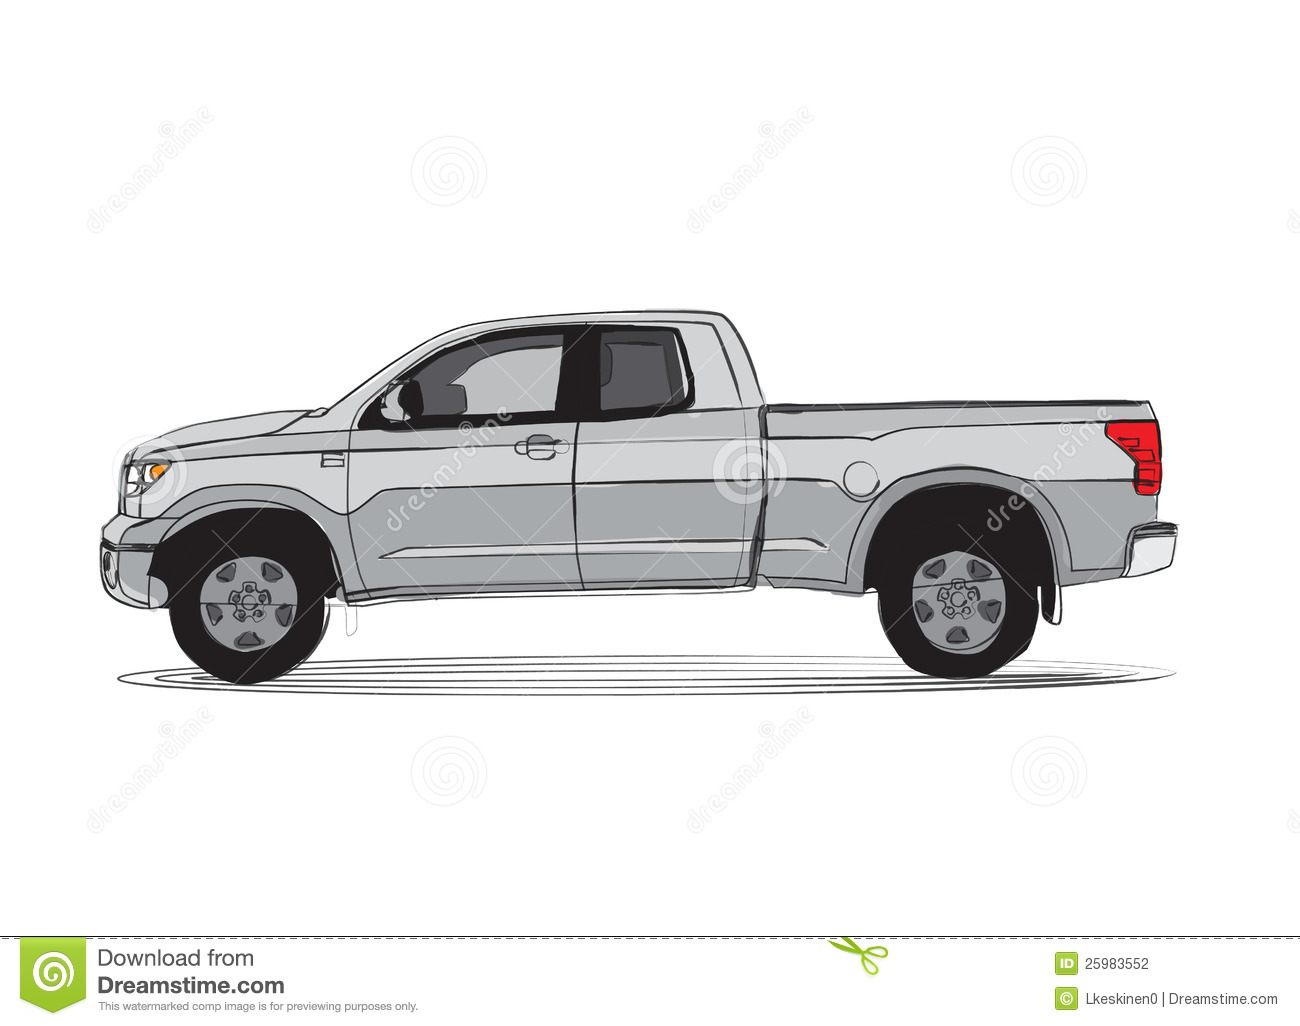 Lifted Ford Truck Coloring Pages. custom international semi trucks ...